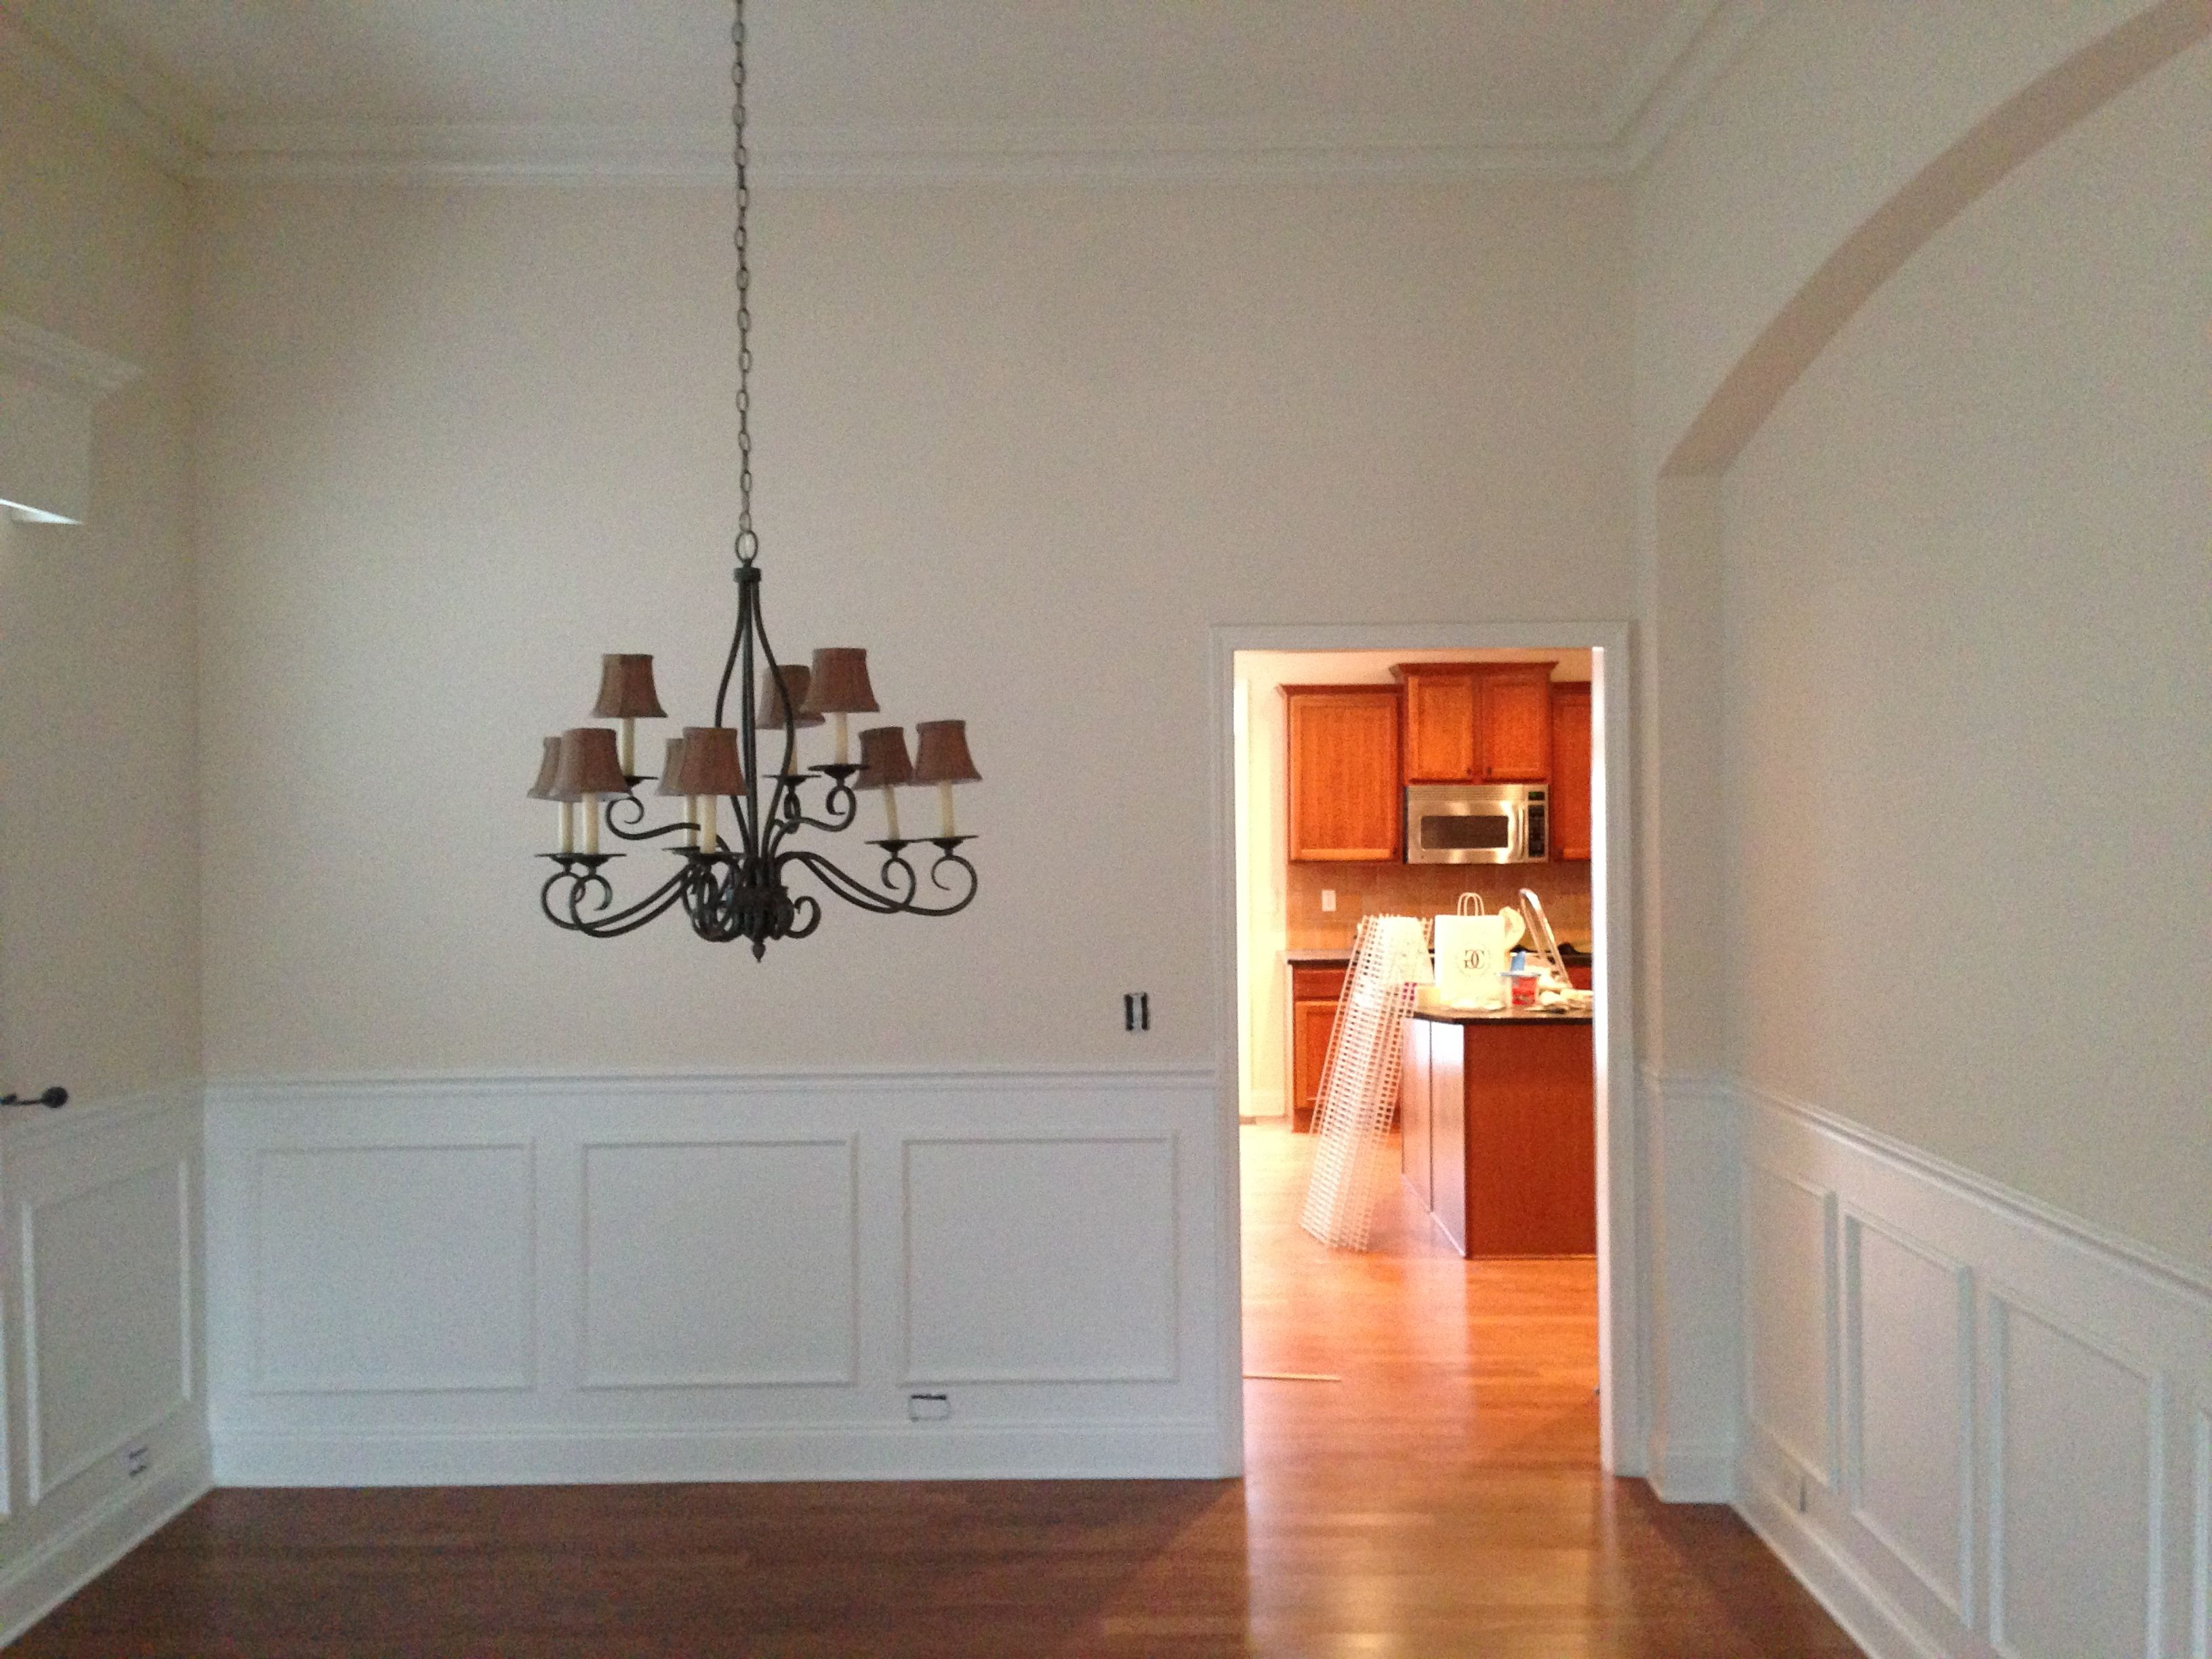 After Photo Updated With Sherwin Williams Superpaint Sw 6140 Moderate White And Trim Is Decorator White S Home Wall Painting Interior Decorating Decor Design